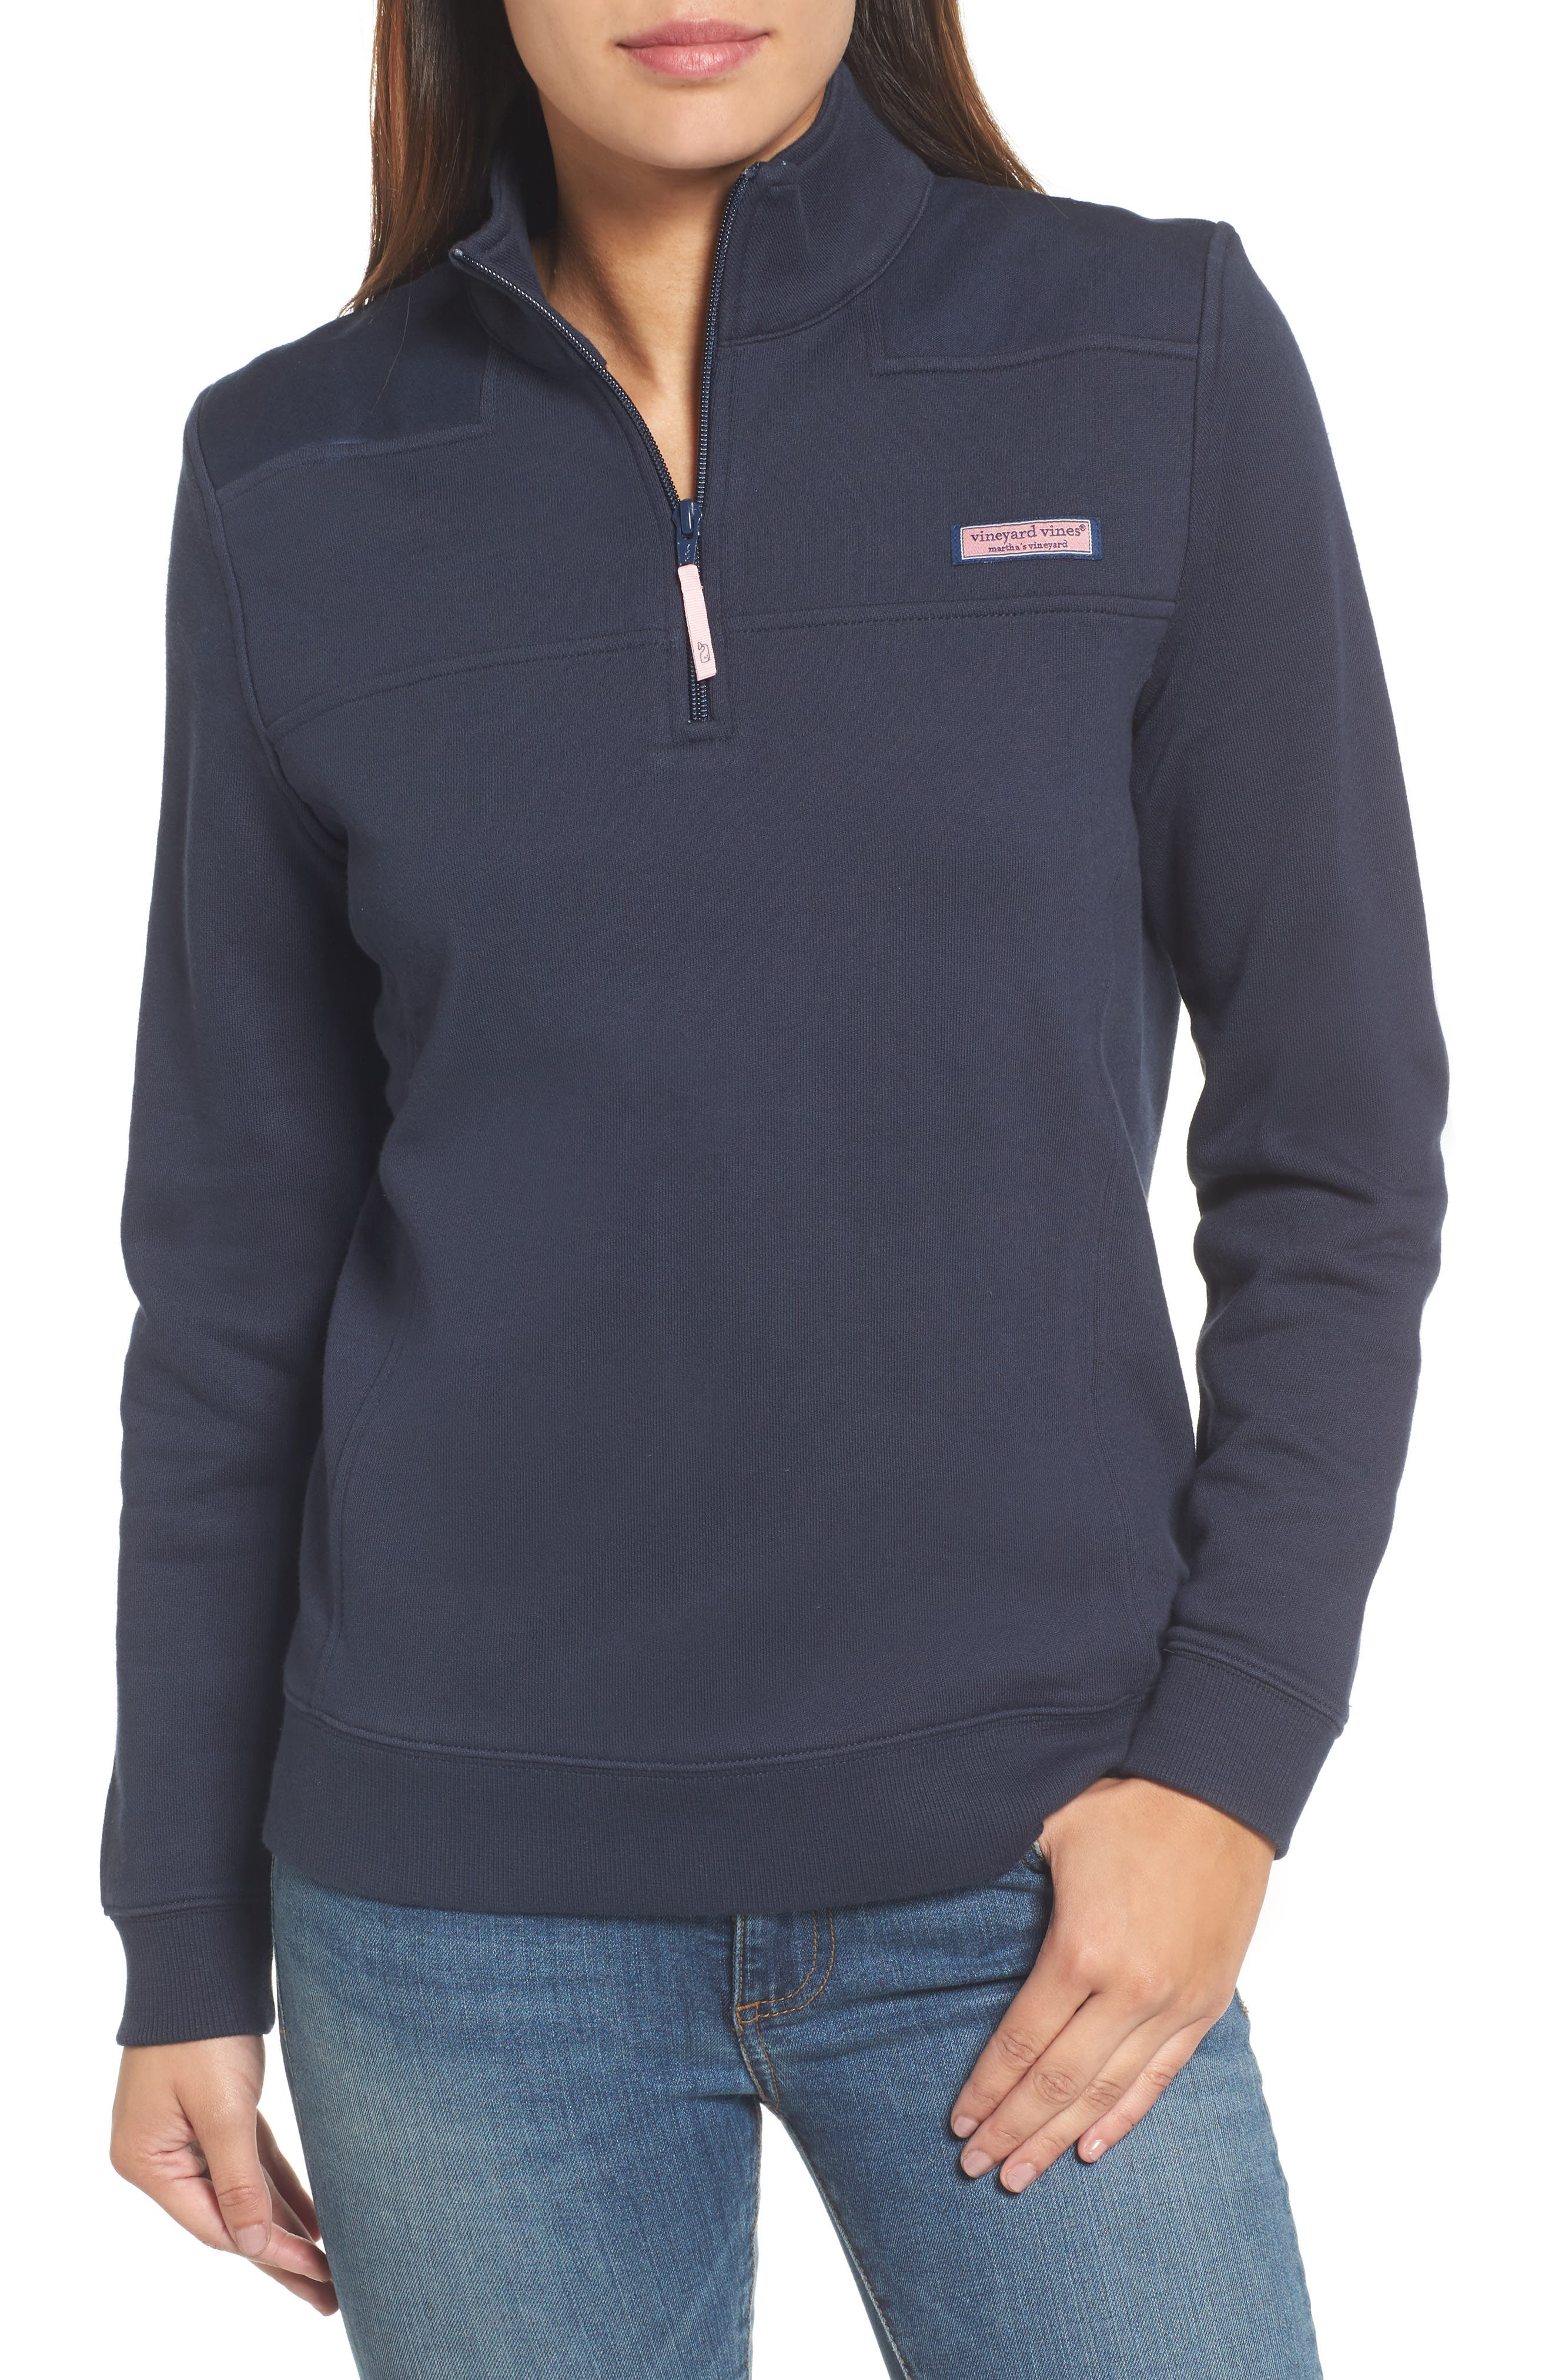 VINEYARD VINES,                             Shep Half Zip French Terry Pullover,                             Main thumbnail 1, color,                             400